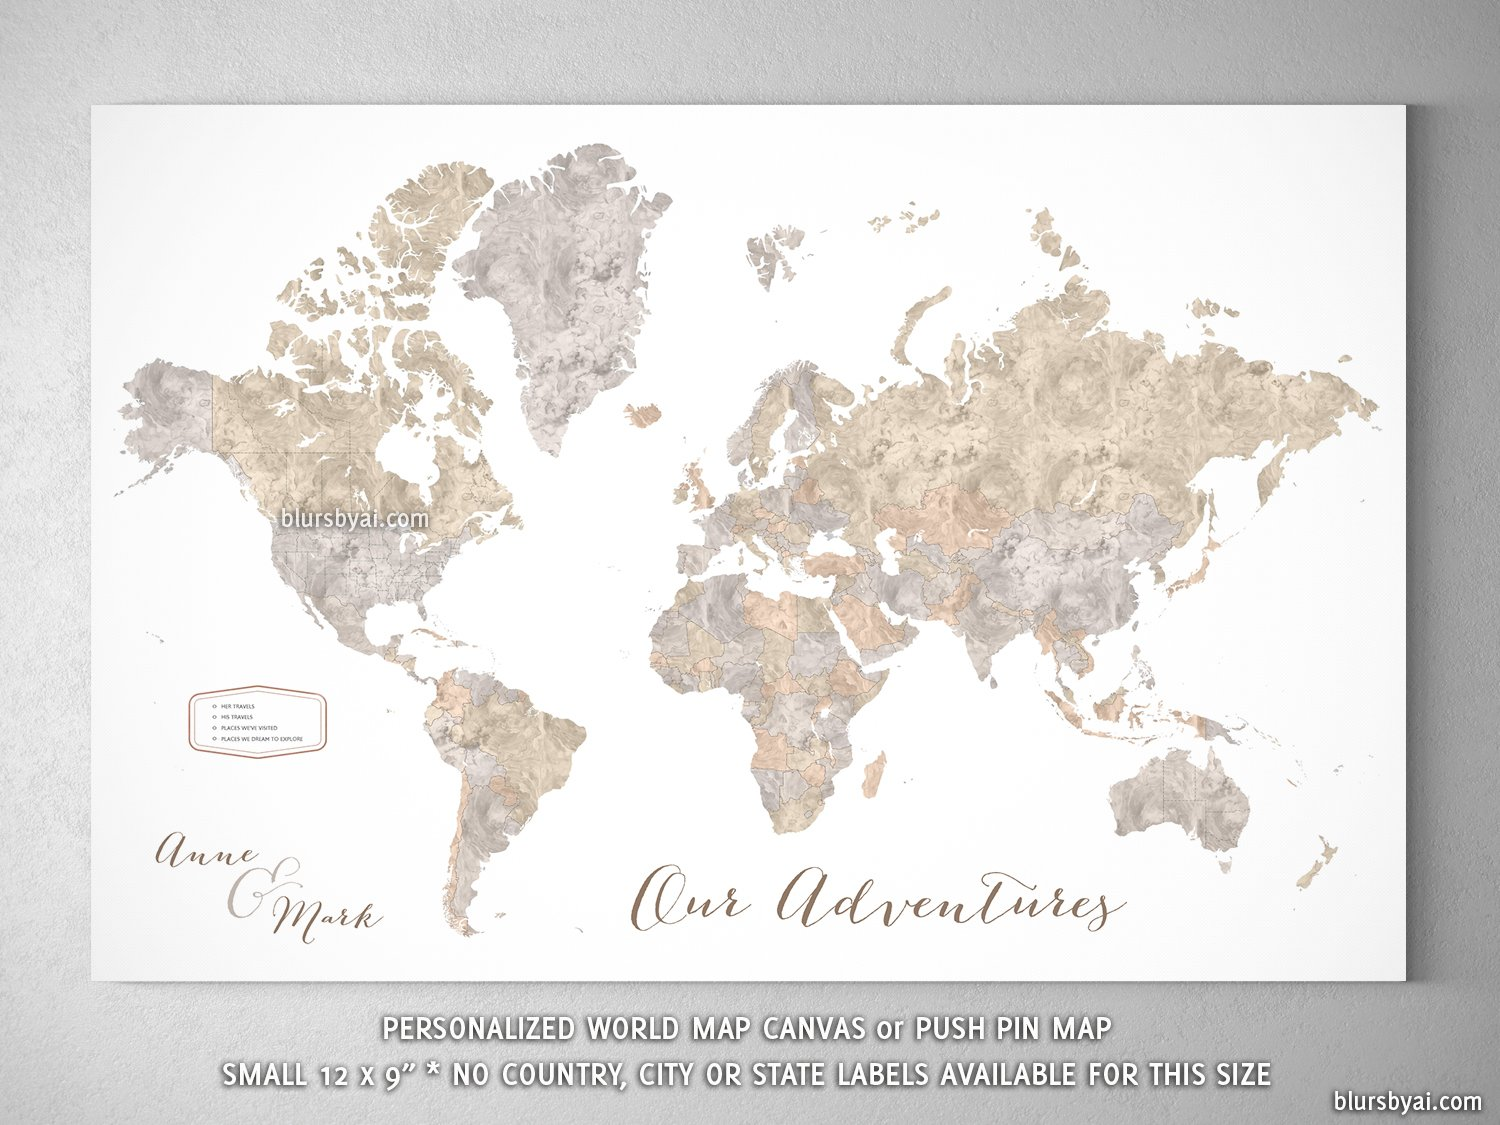 Small personalized world map canvas print or push pin map 12x9 small personalized world map canvas print or push pin map 12x9 abey gumiabroncs Image collections